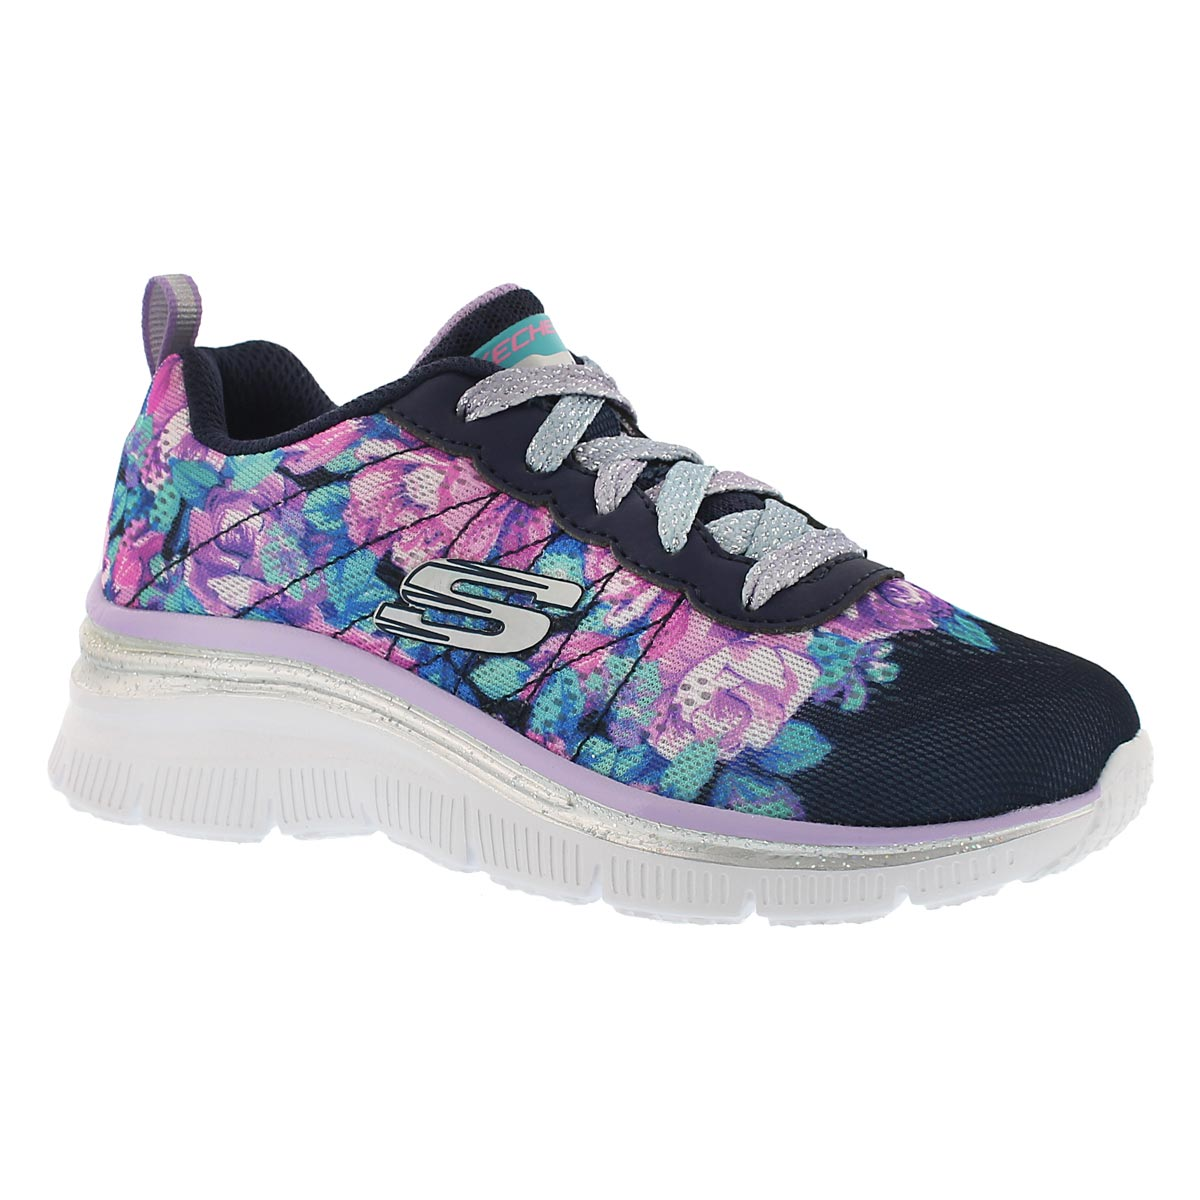 Grls Fashion Fit nvy/multi wedge sneaker